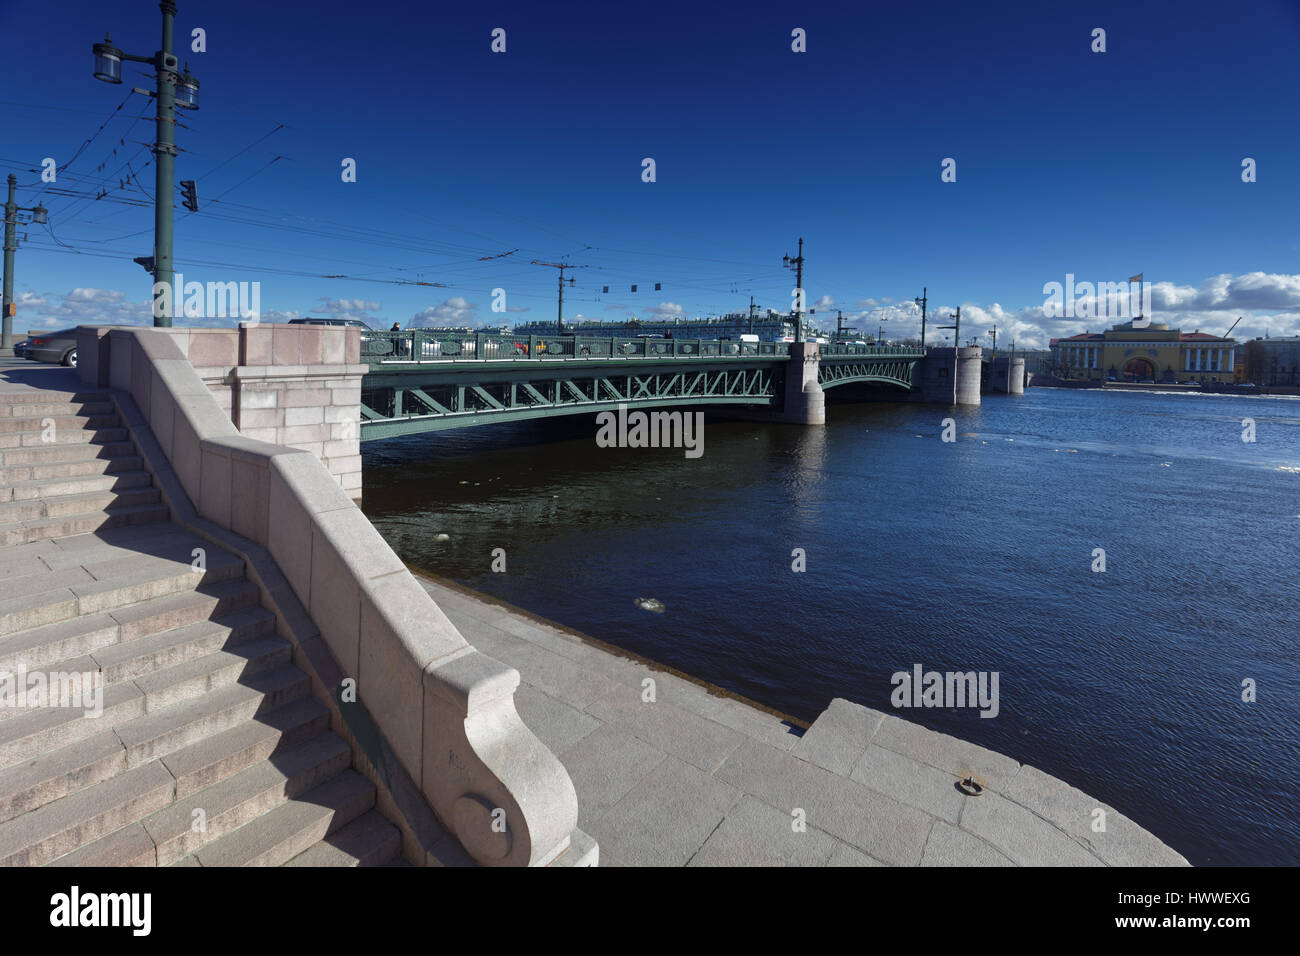 St. Petersburg, Russia, 23rd March, 2017. Palace bridge in a sunny day during the first Ice drift on the river Neva Stock Photo